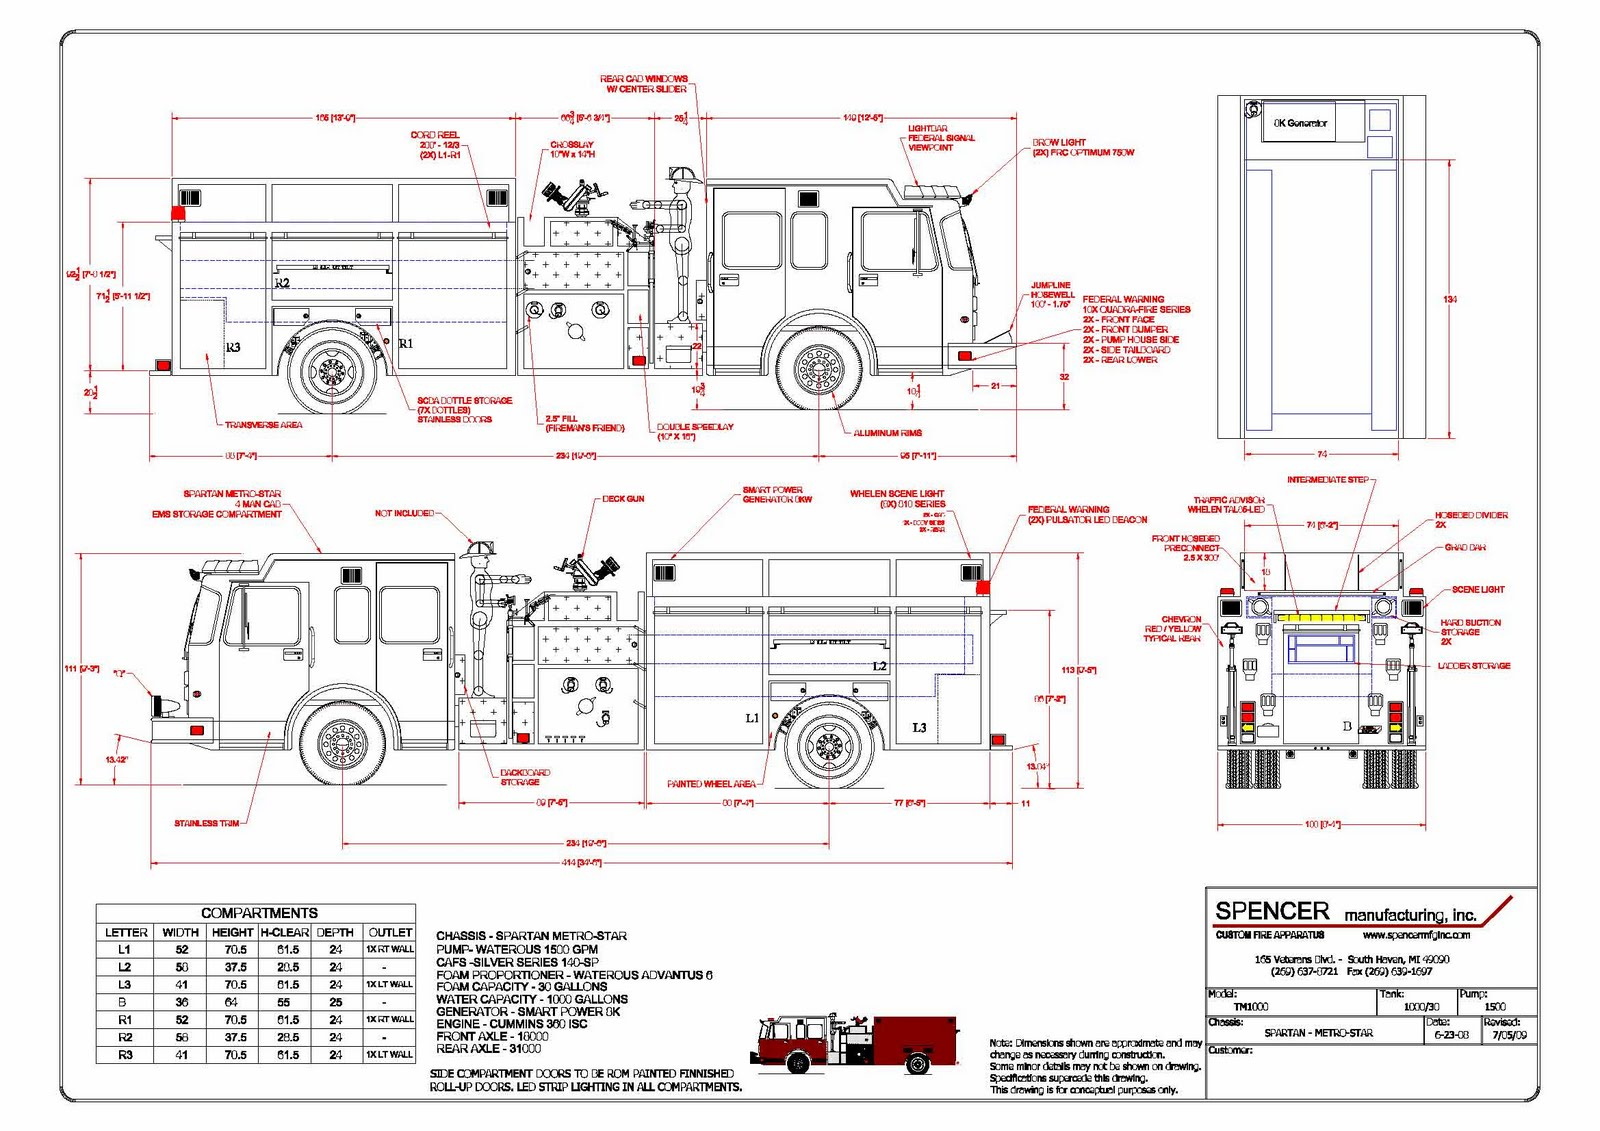 my fire truck family 2009 dpst switch wiring diagram tuesday, december 1, 2009